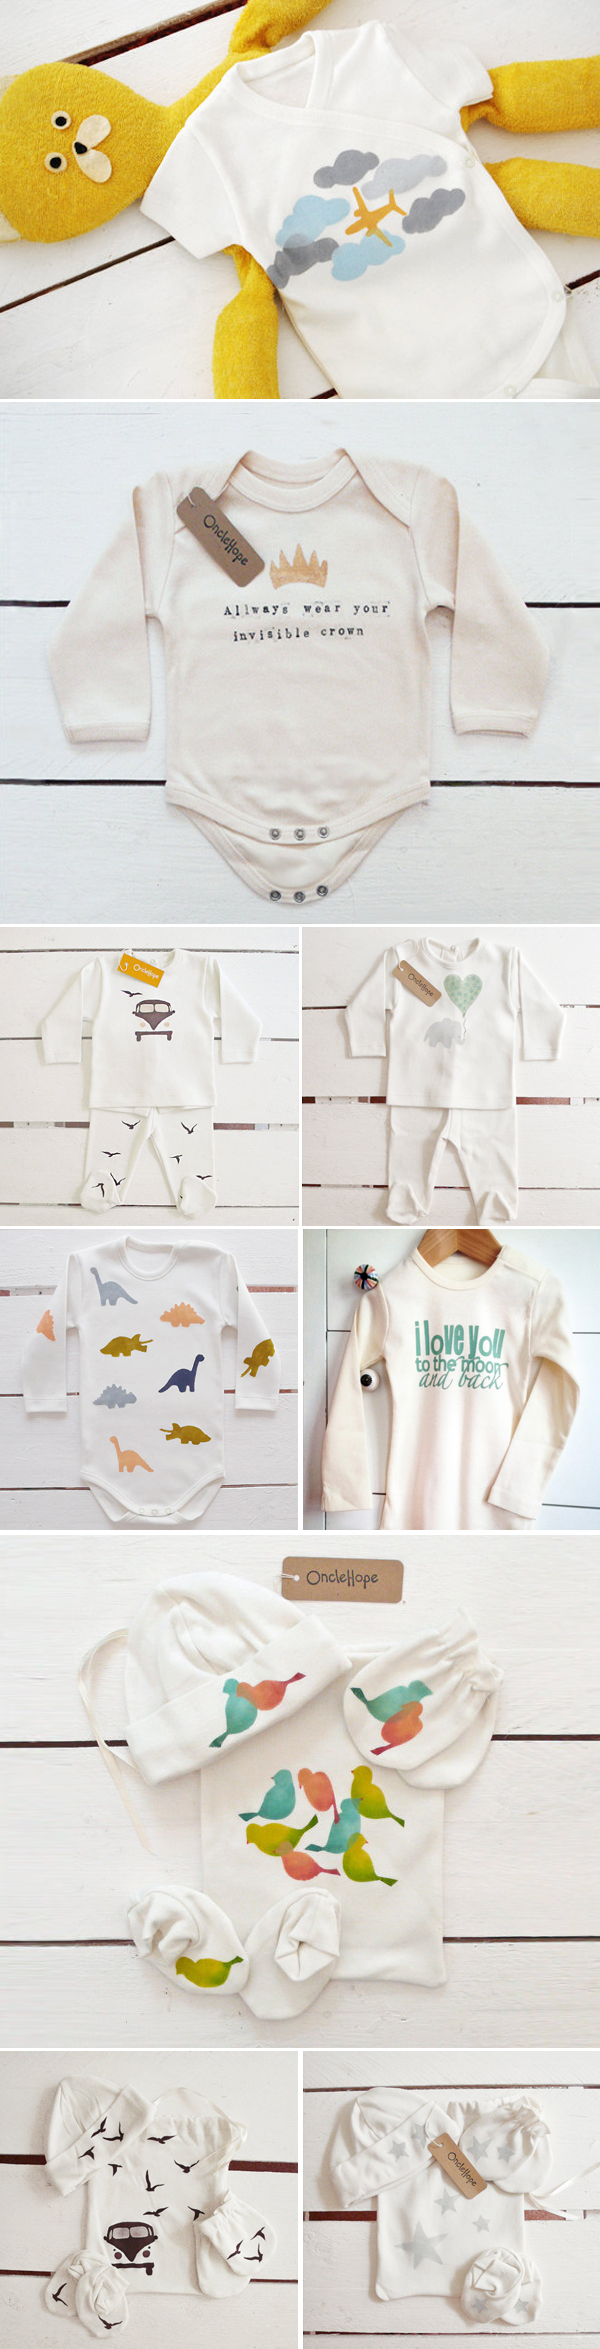 Baby Clothes-Oncle Hope